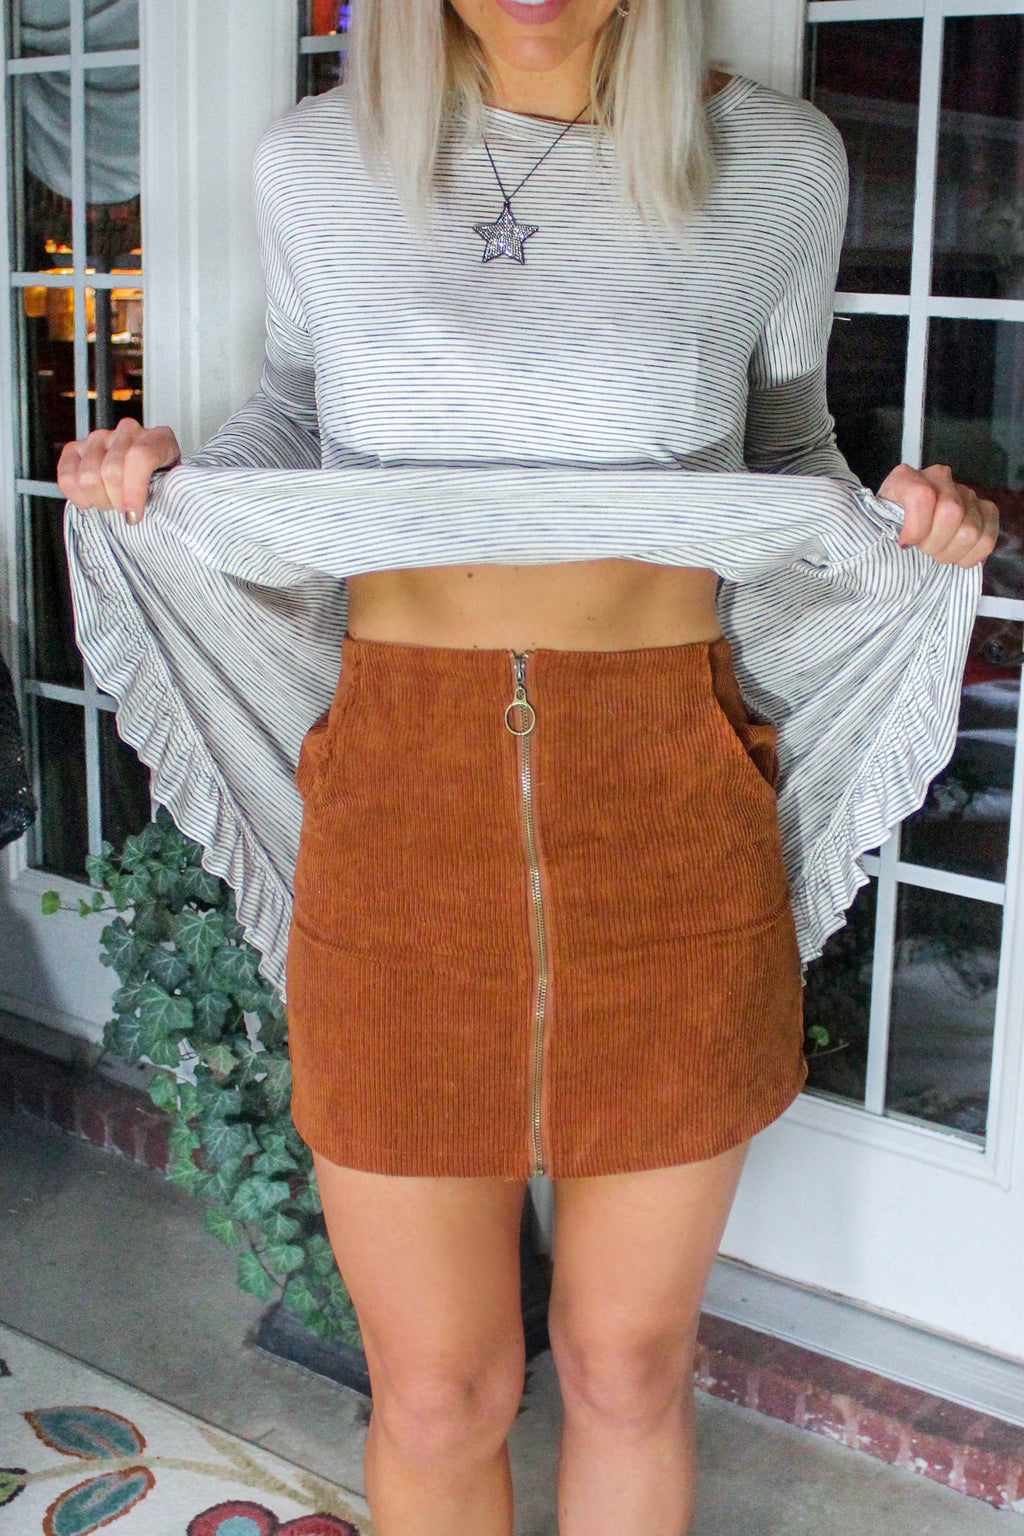 Tan O-Ring Front Zipper Mini Skirt, Corduroy Zip Mini Skirt - Tan - Buy Trendy Skirts Online At Kendry Collection Boutique